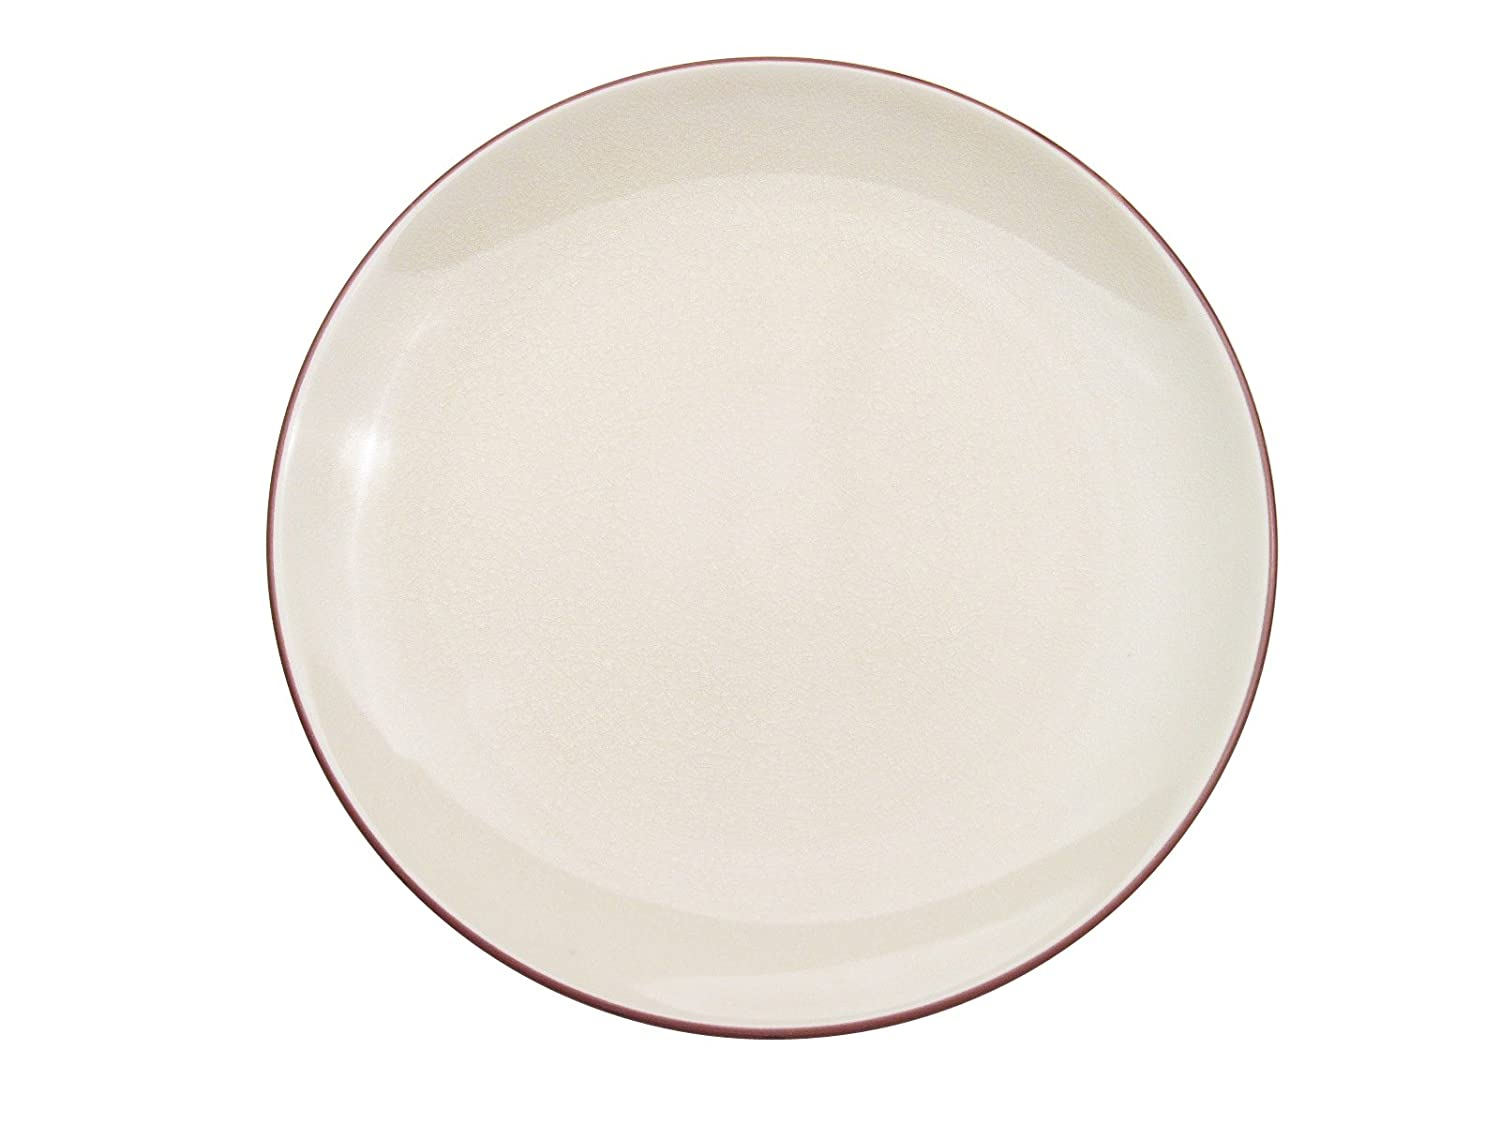 CAC China 666-16-W Japanese Style 10-Inch Creamy White Coupe Round Plate, Box of 12